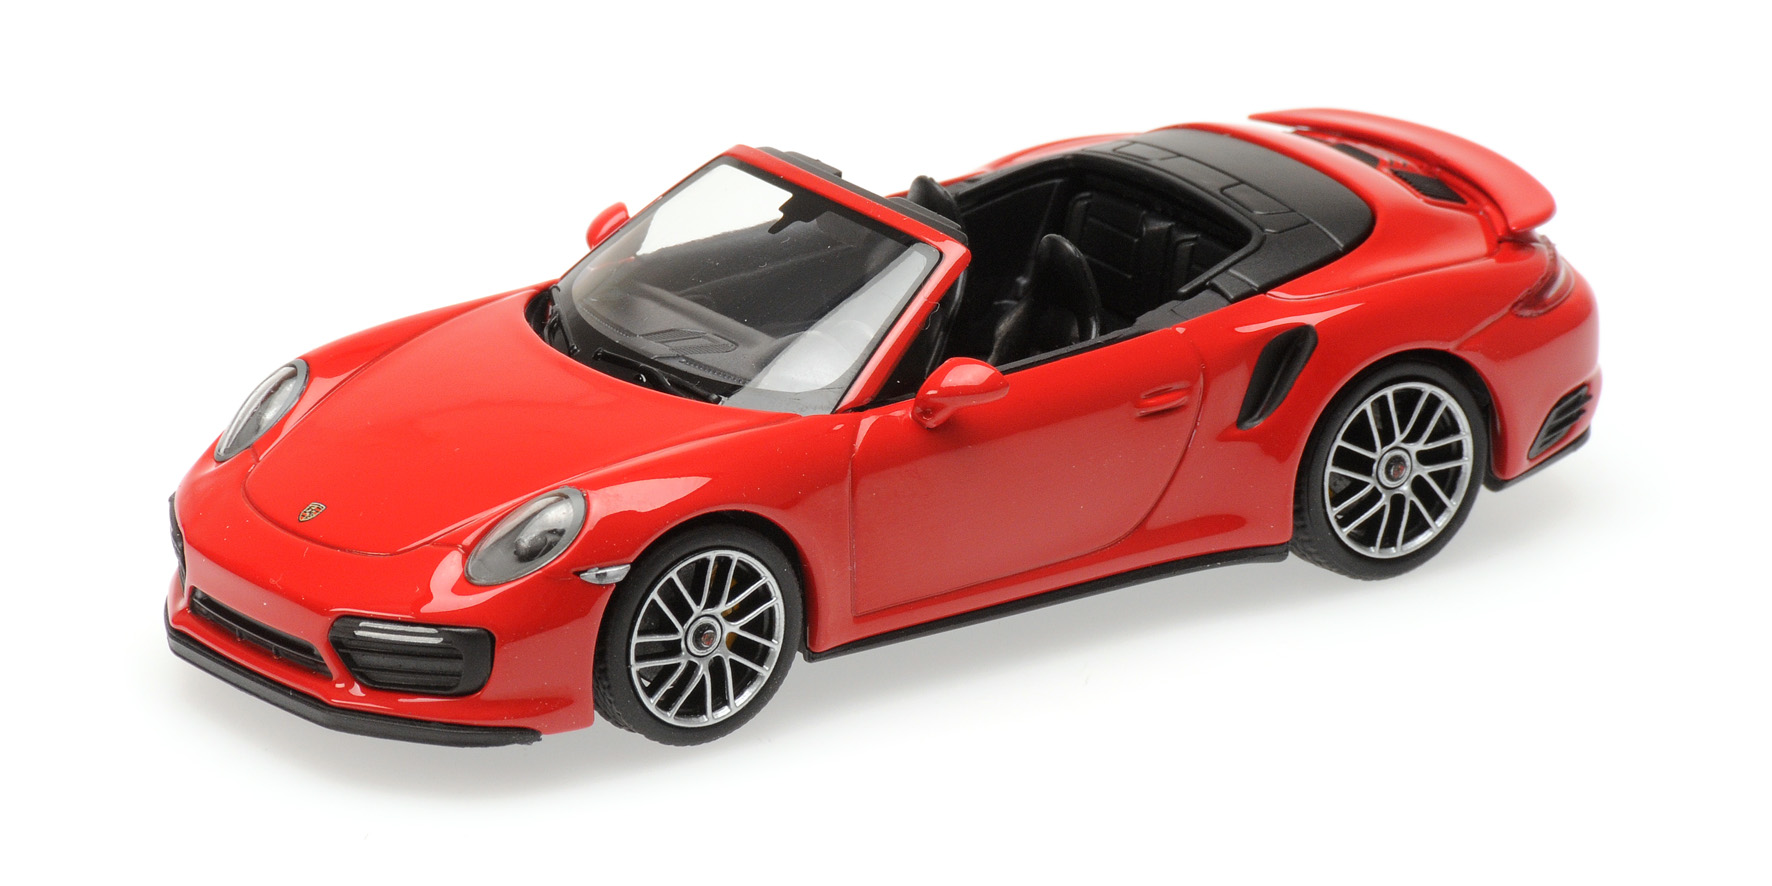 Porsche 911 (991.2) Turbo S Cabriolet 2017 Rood